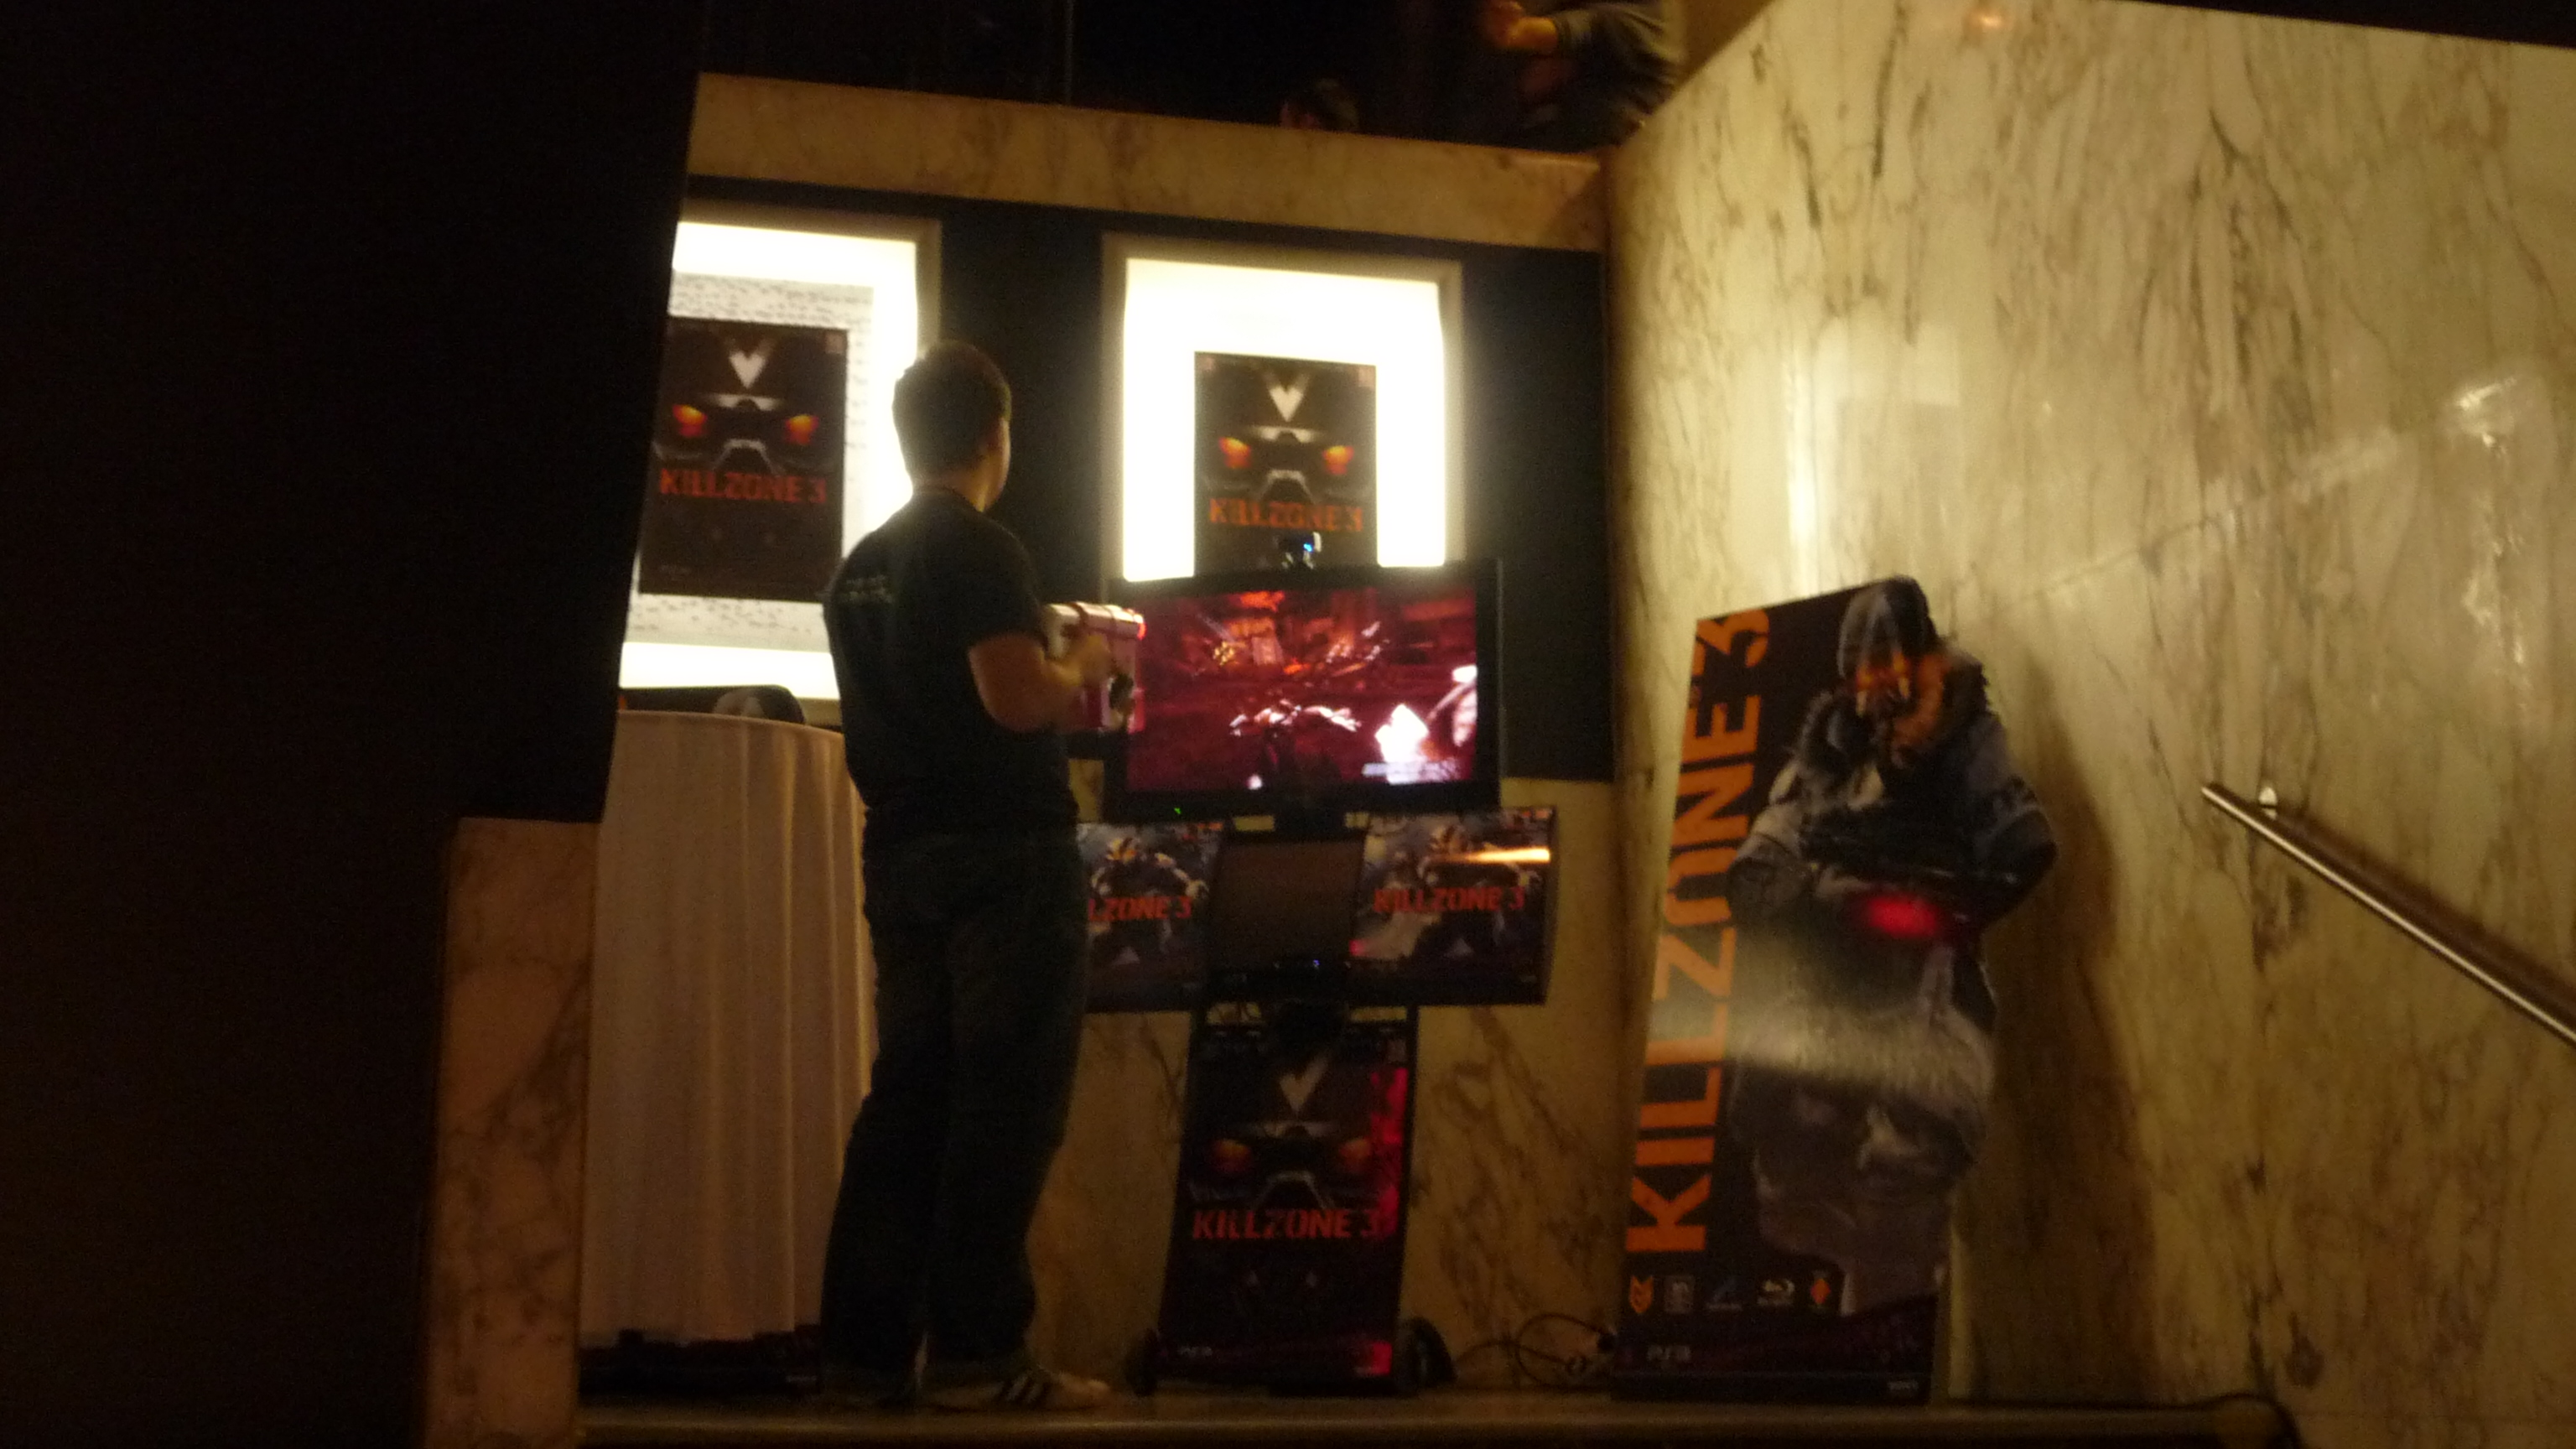 Killzone 3 launch party